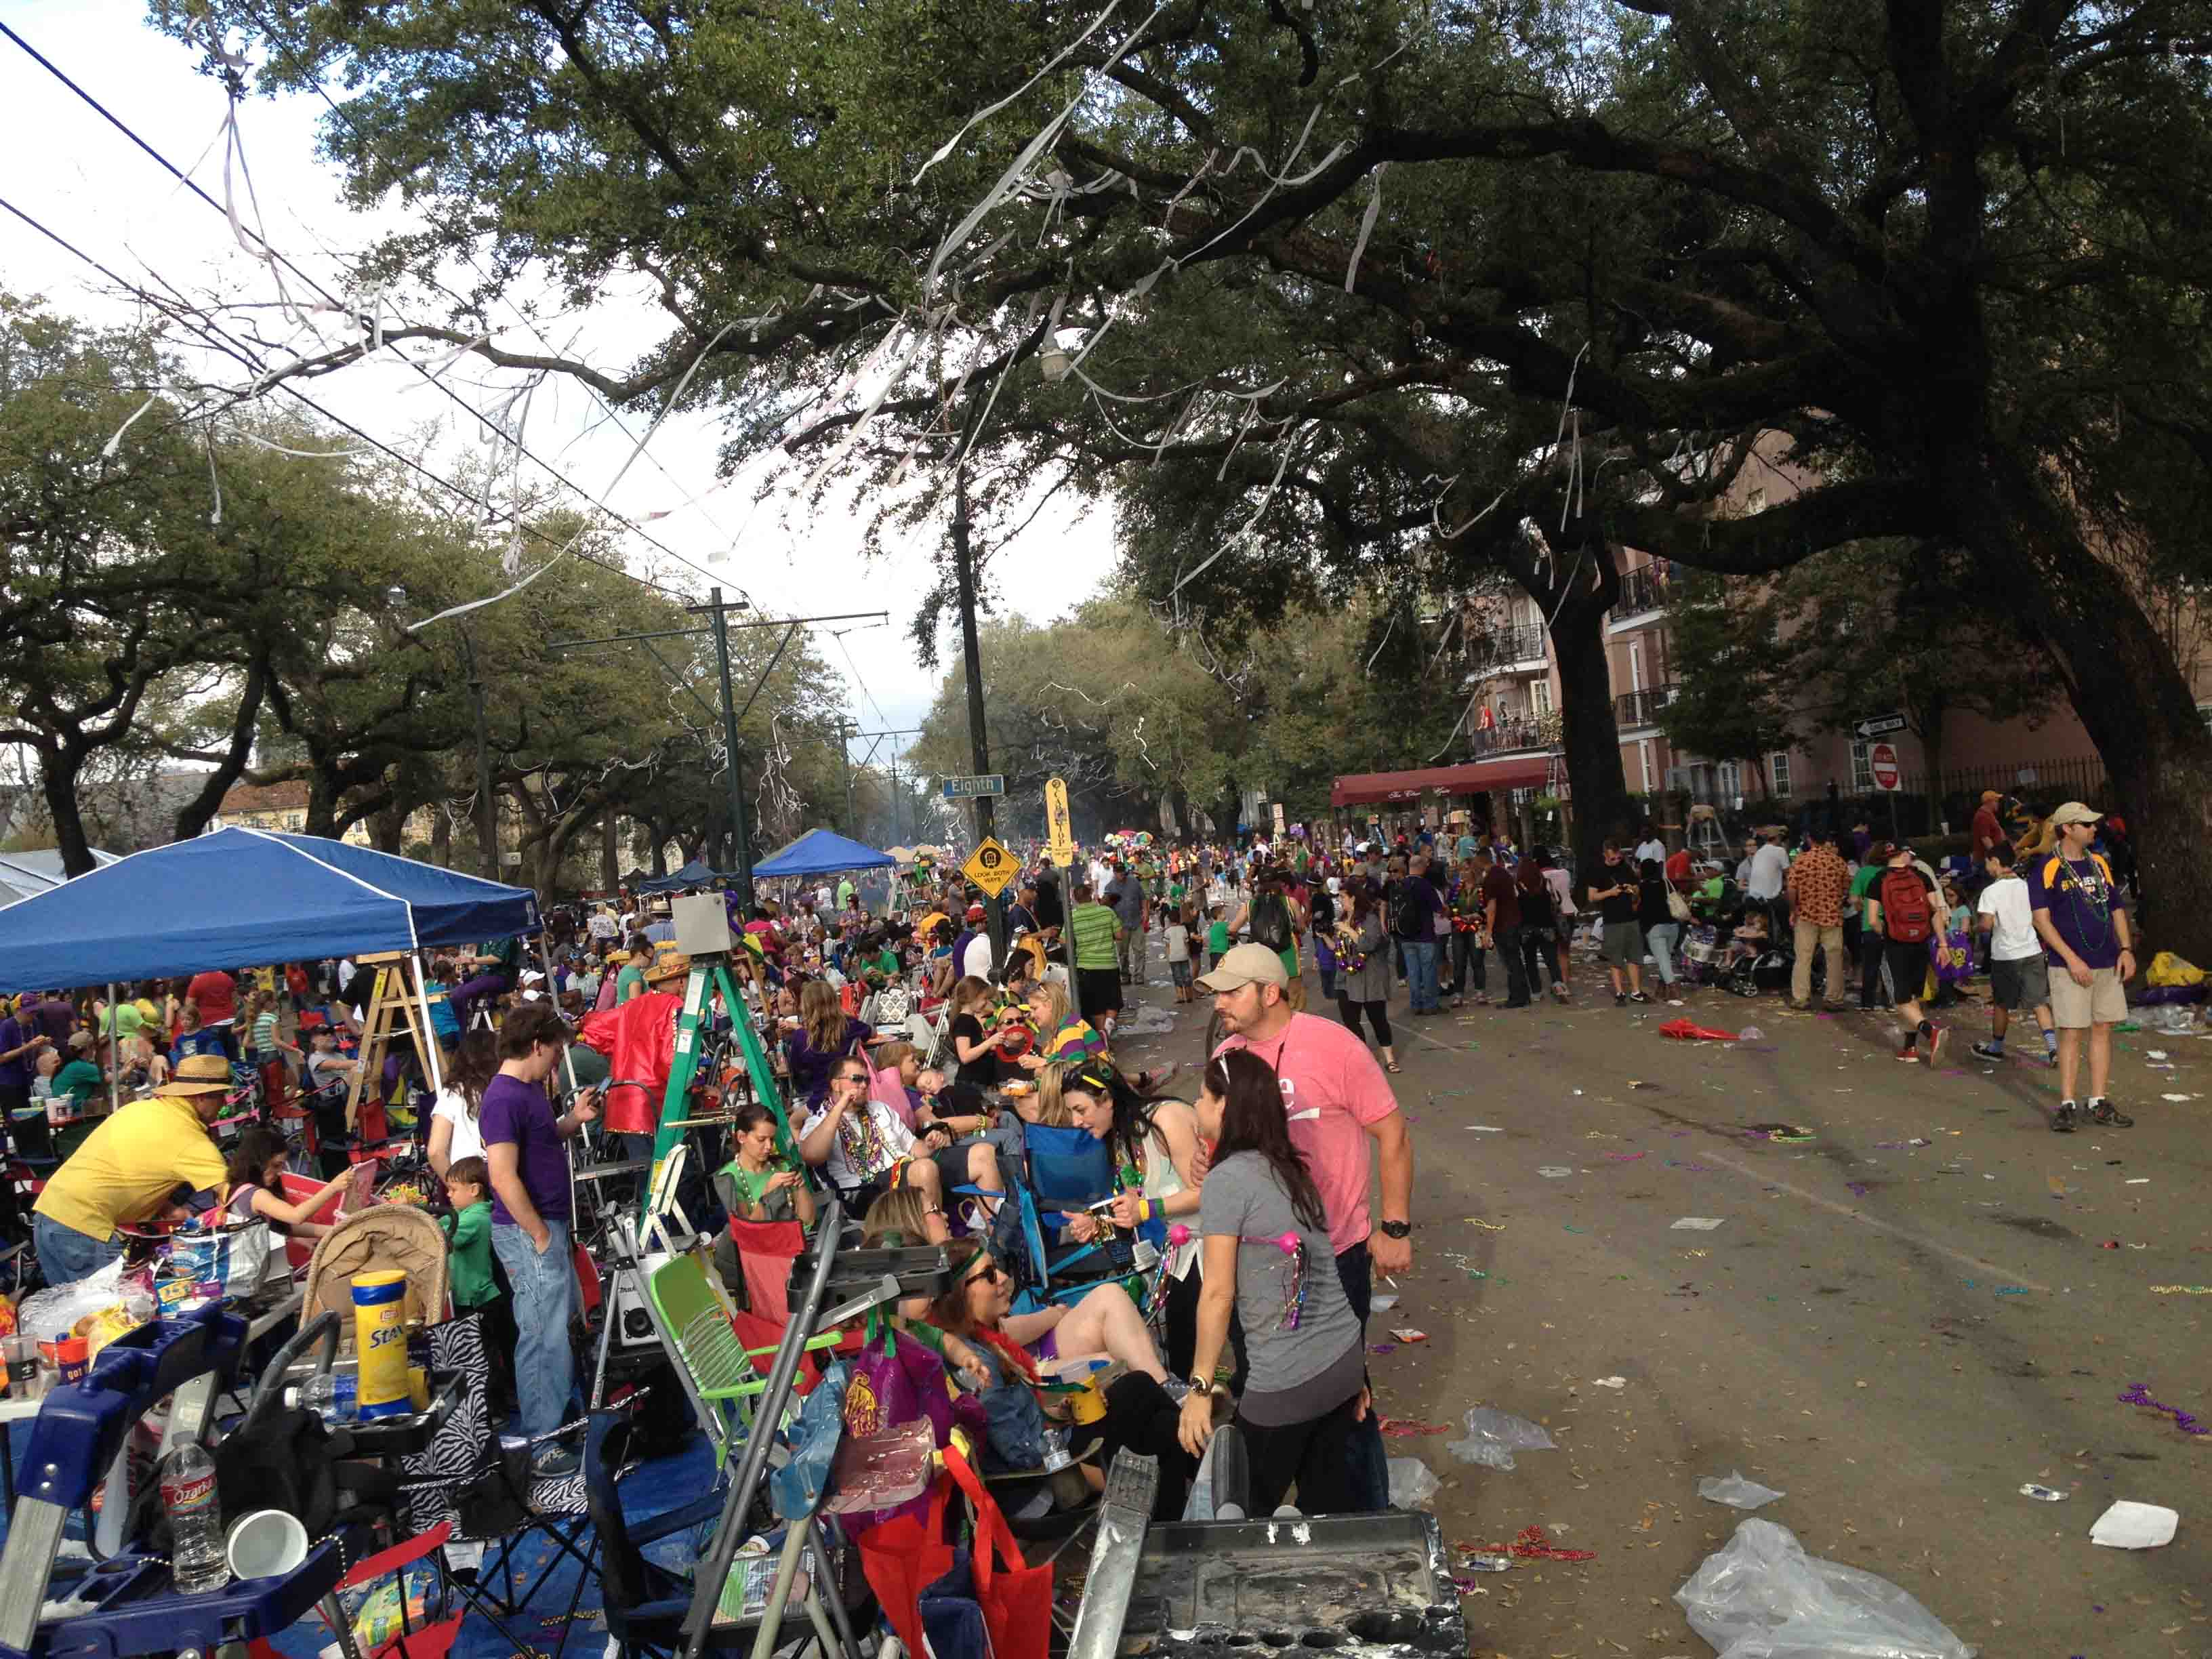 The streets of New Orleans are lined with thousands of people as part of the annual Mardi Gras parades. An average of nearly one million people attend Mardi Gras in New Orleans each year.